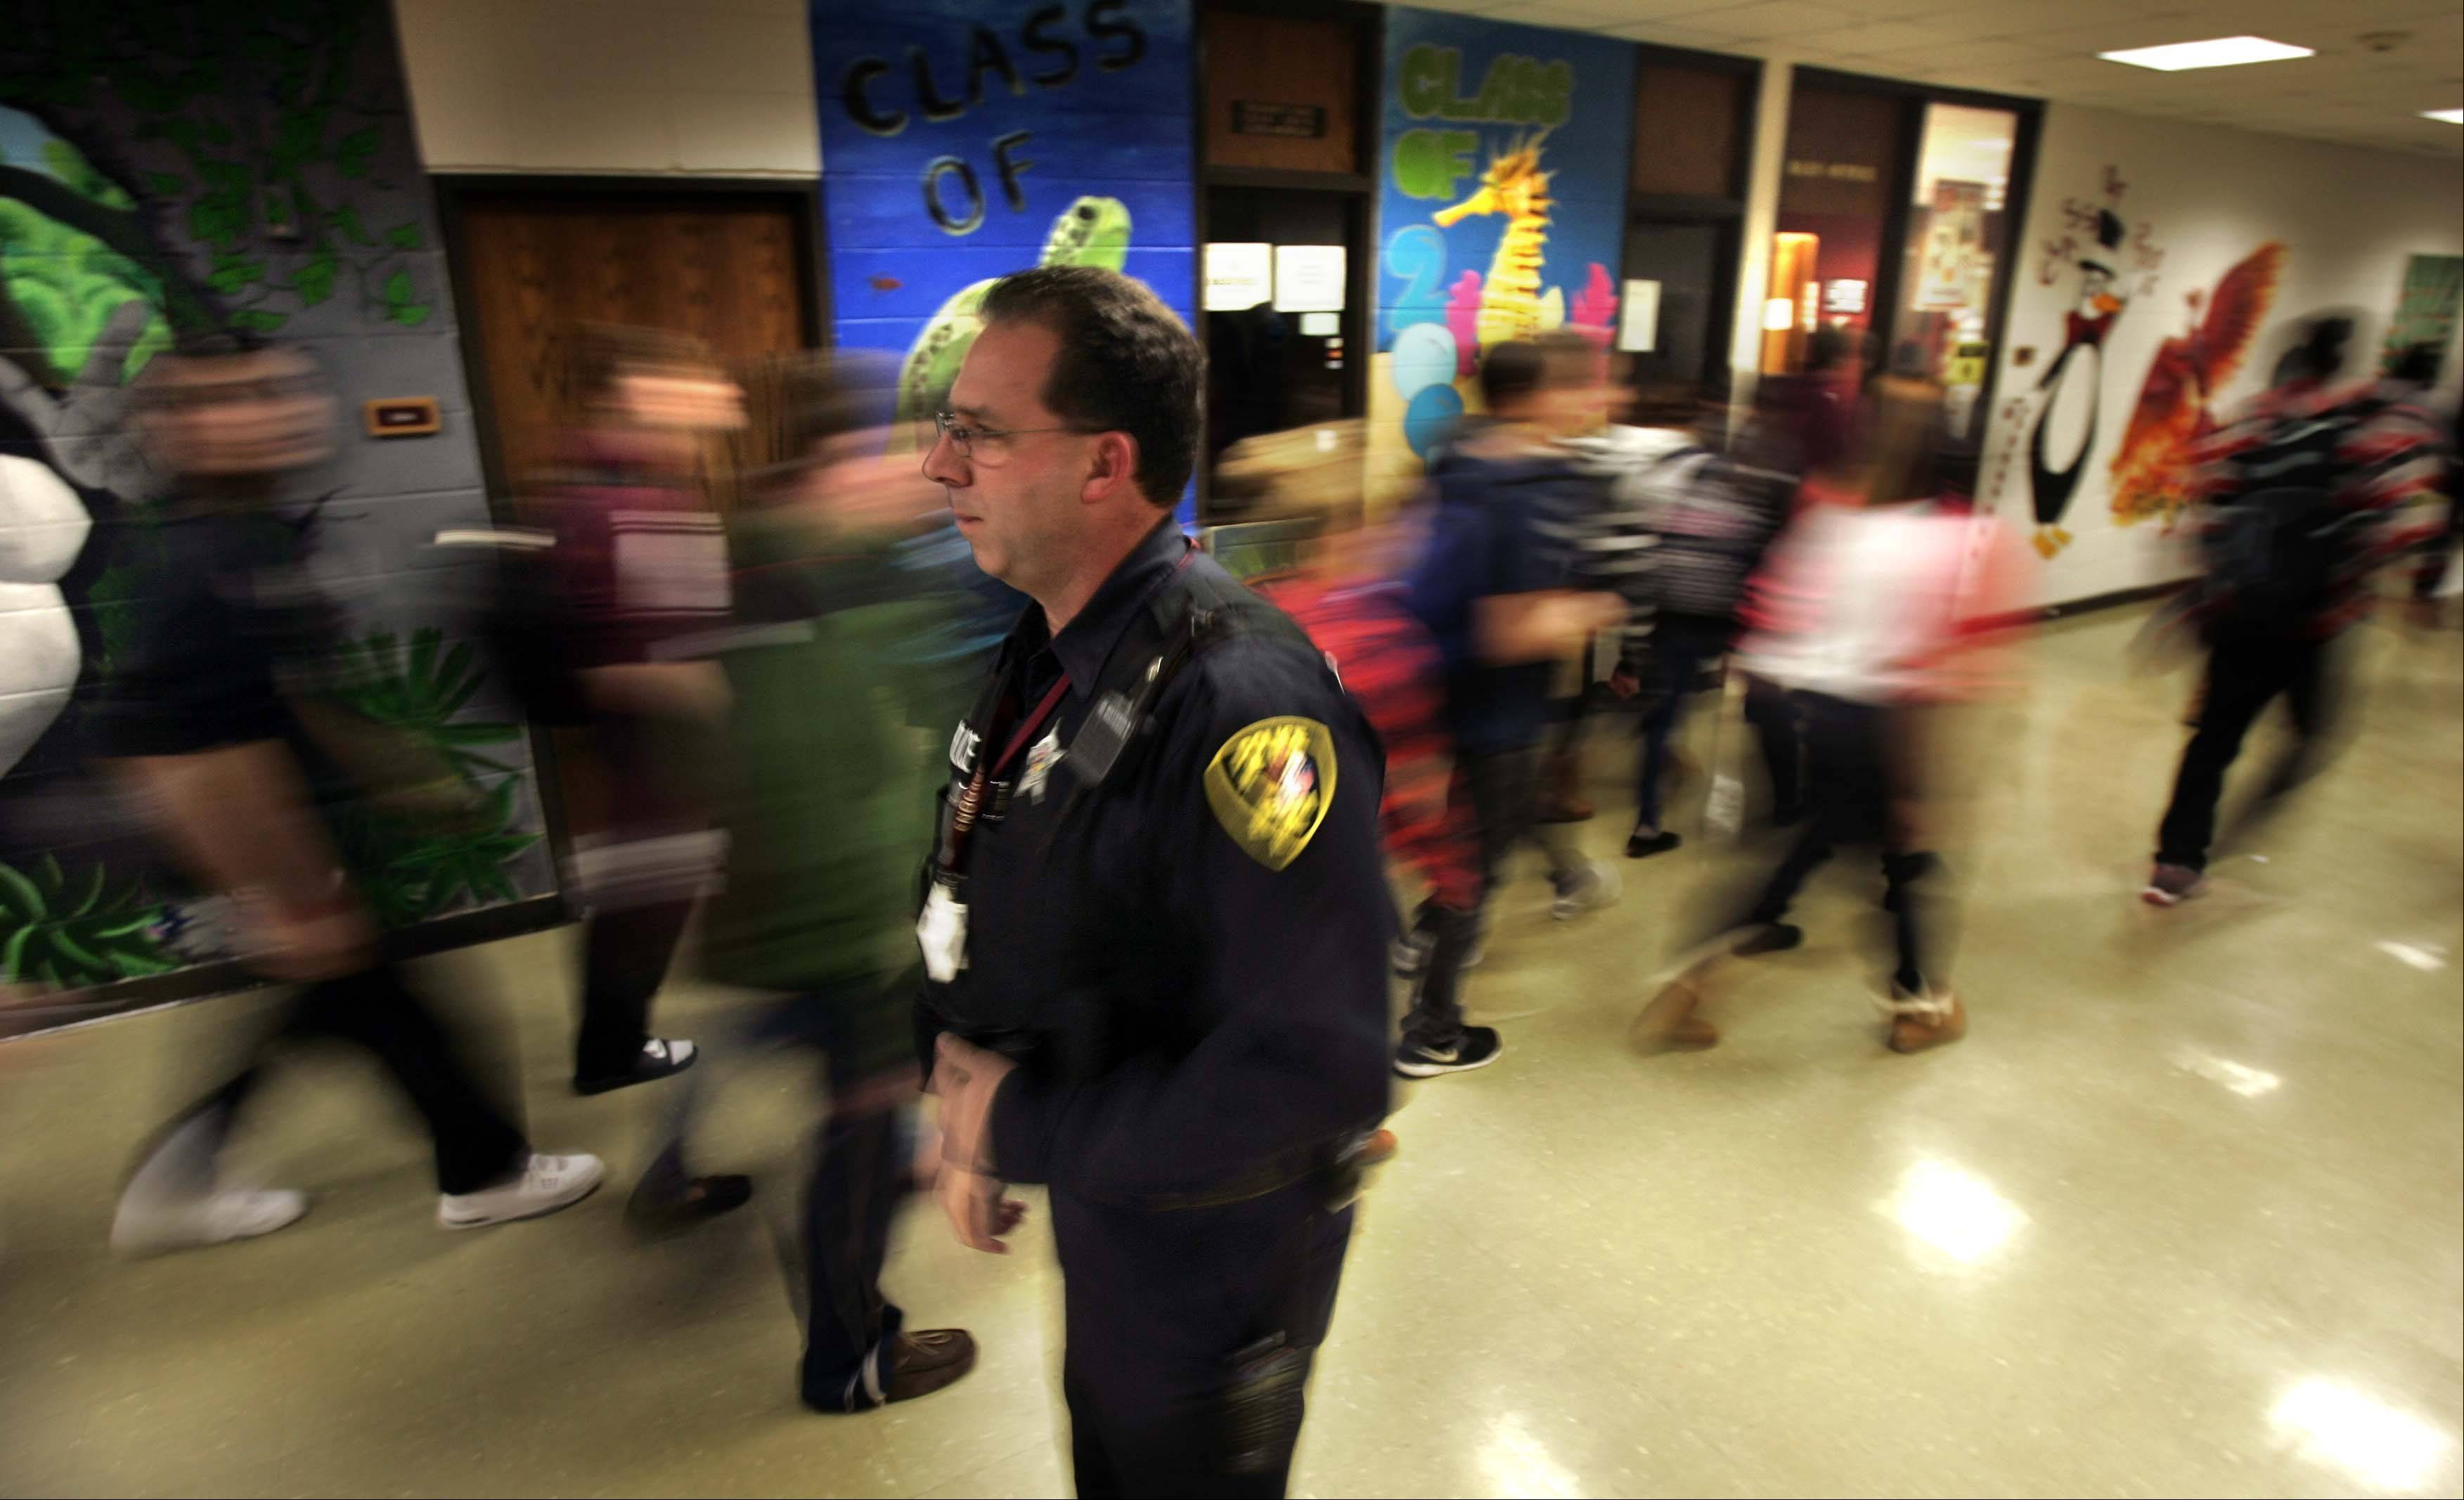 Elgin police Det. Bill Wood greets many of the more than 2,500 Elgin High School students by name as they head to class during a passing period Thursday. He supports specialized training for officers stationed in schools.